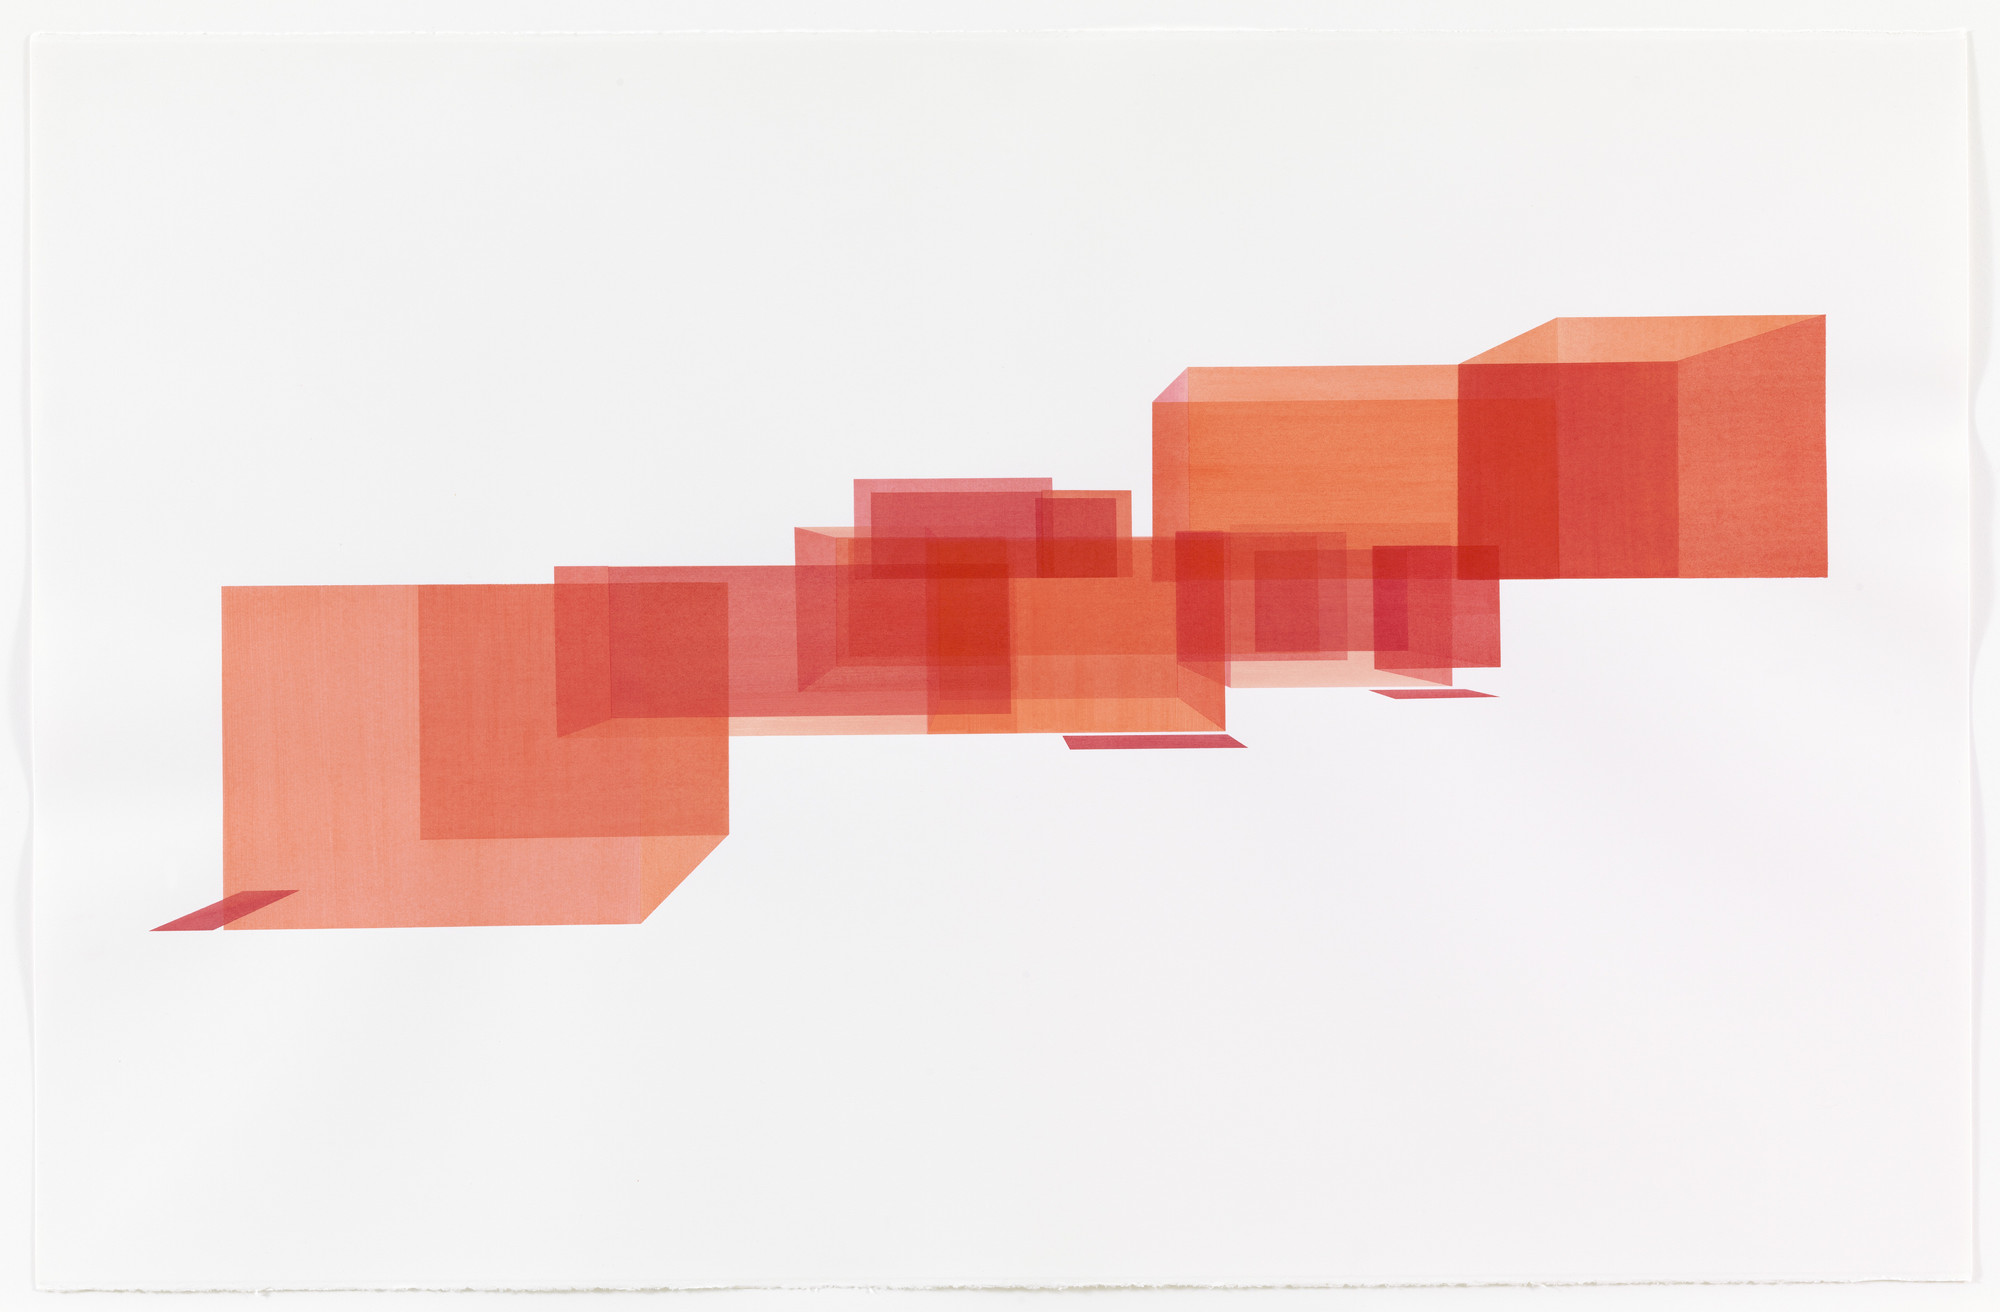 Kevin Appel. House - South Rotation Red: 1 East. (2000)